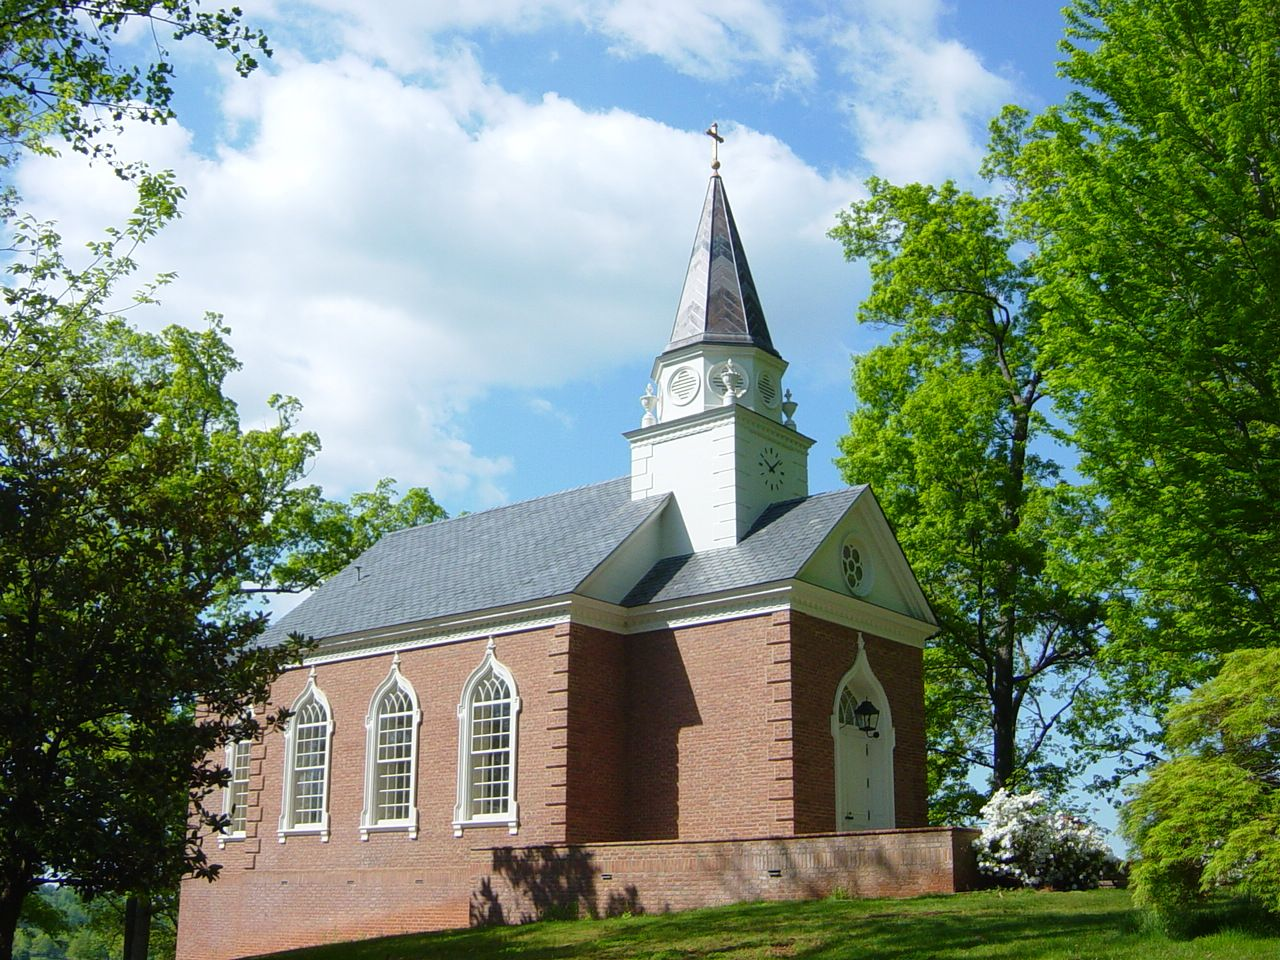 Springtime at the Chapel. A perfect venue for an intimate